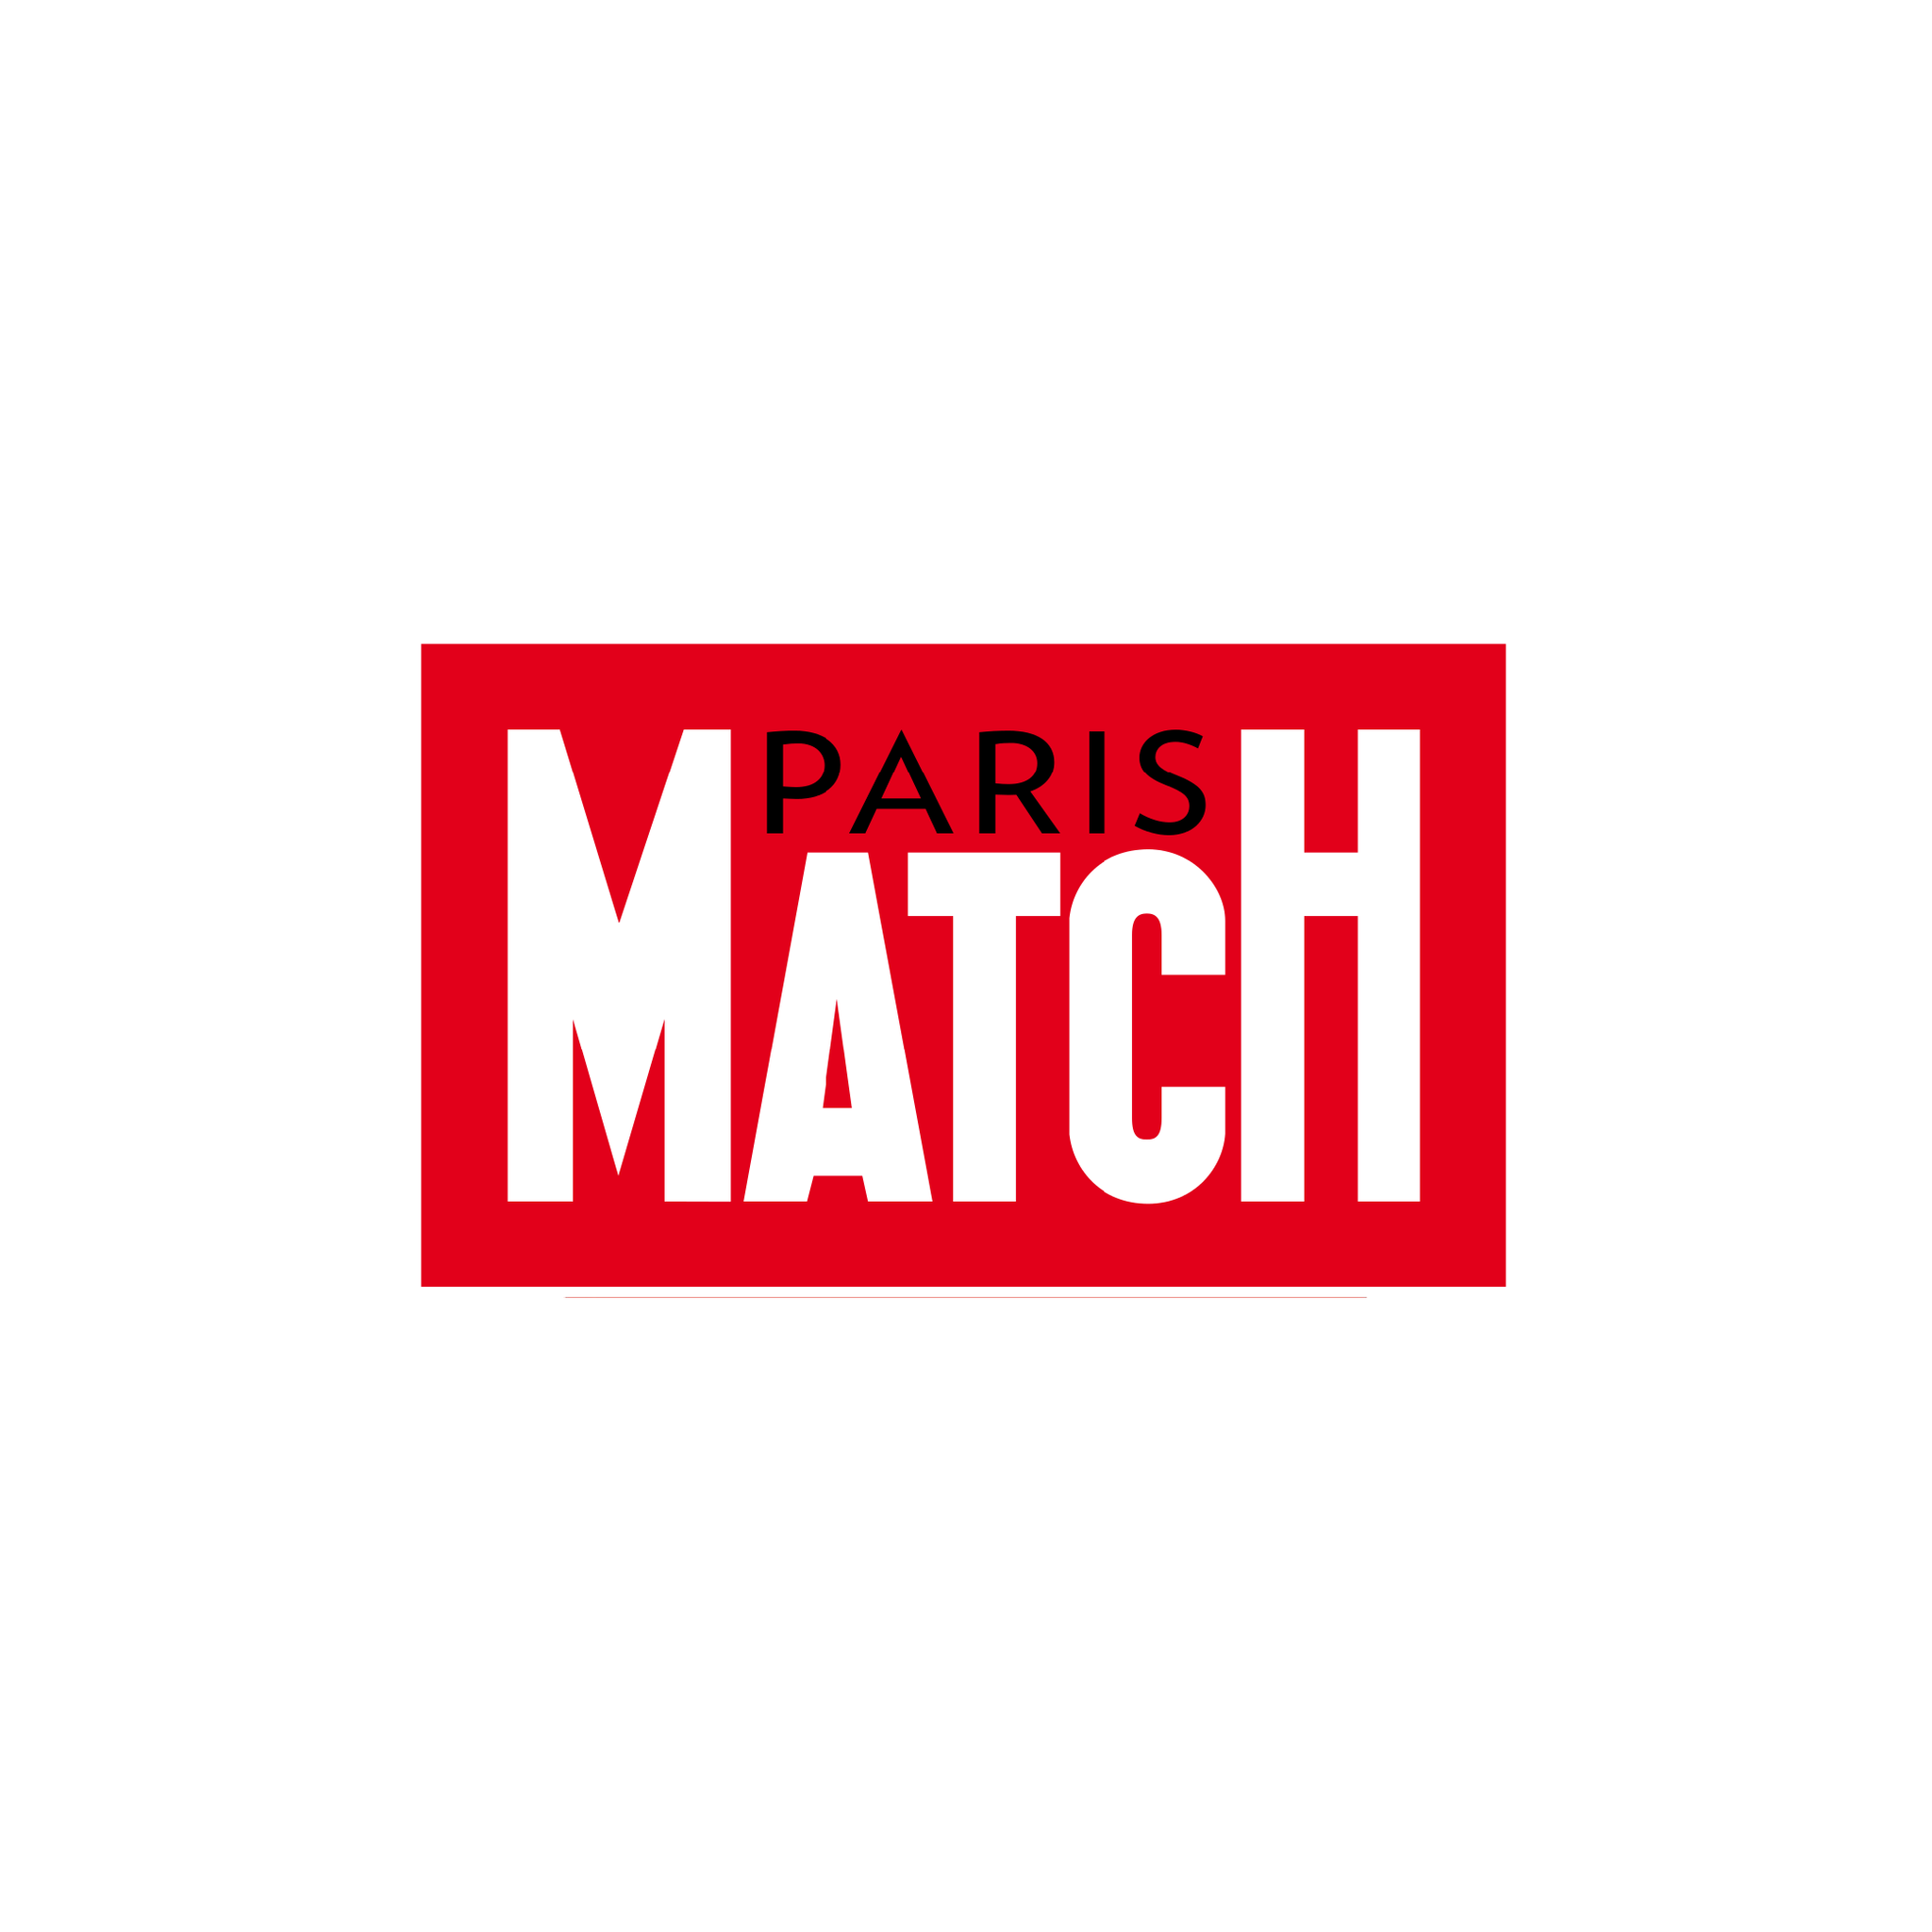 Paris Match press